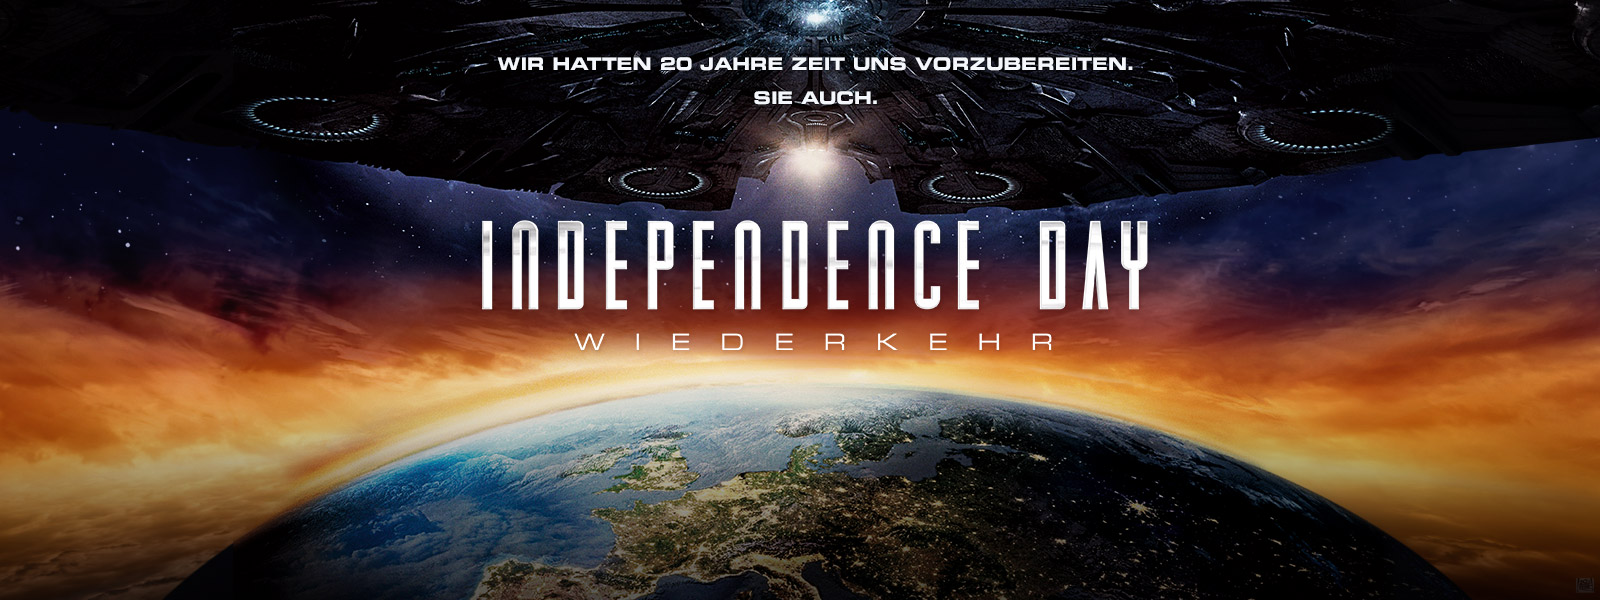 Independence Day: Wiederkehr (2016) - Independence Day 2